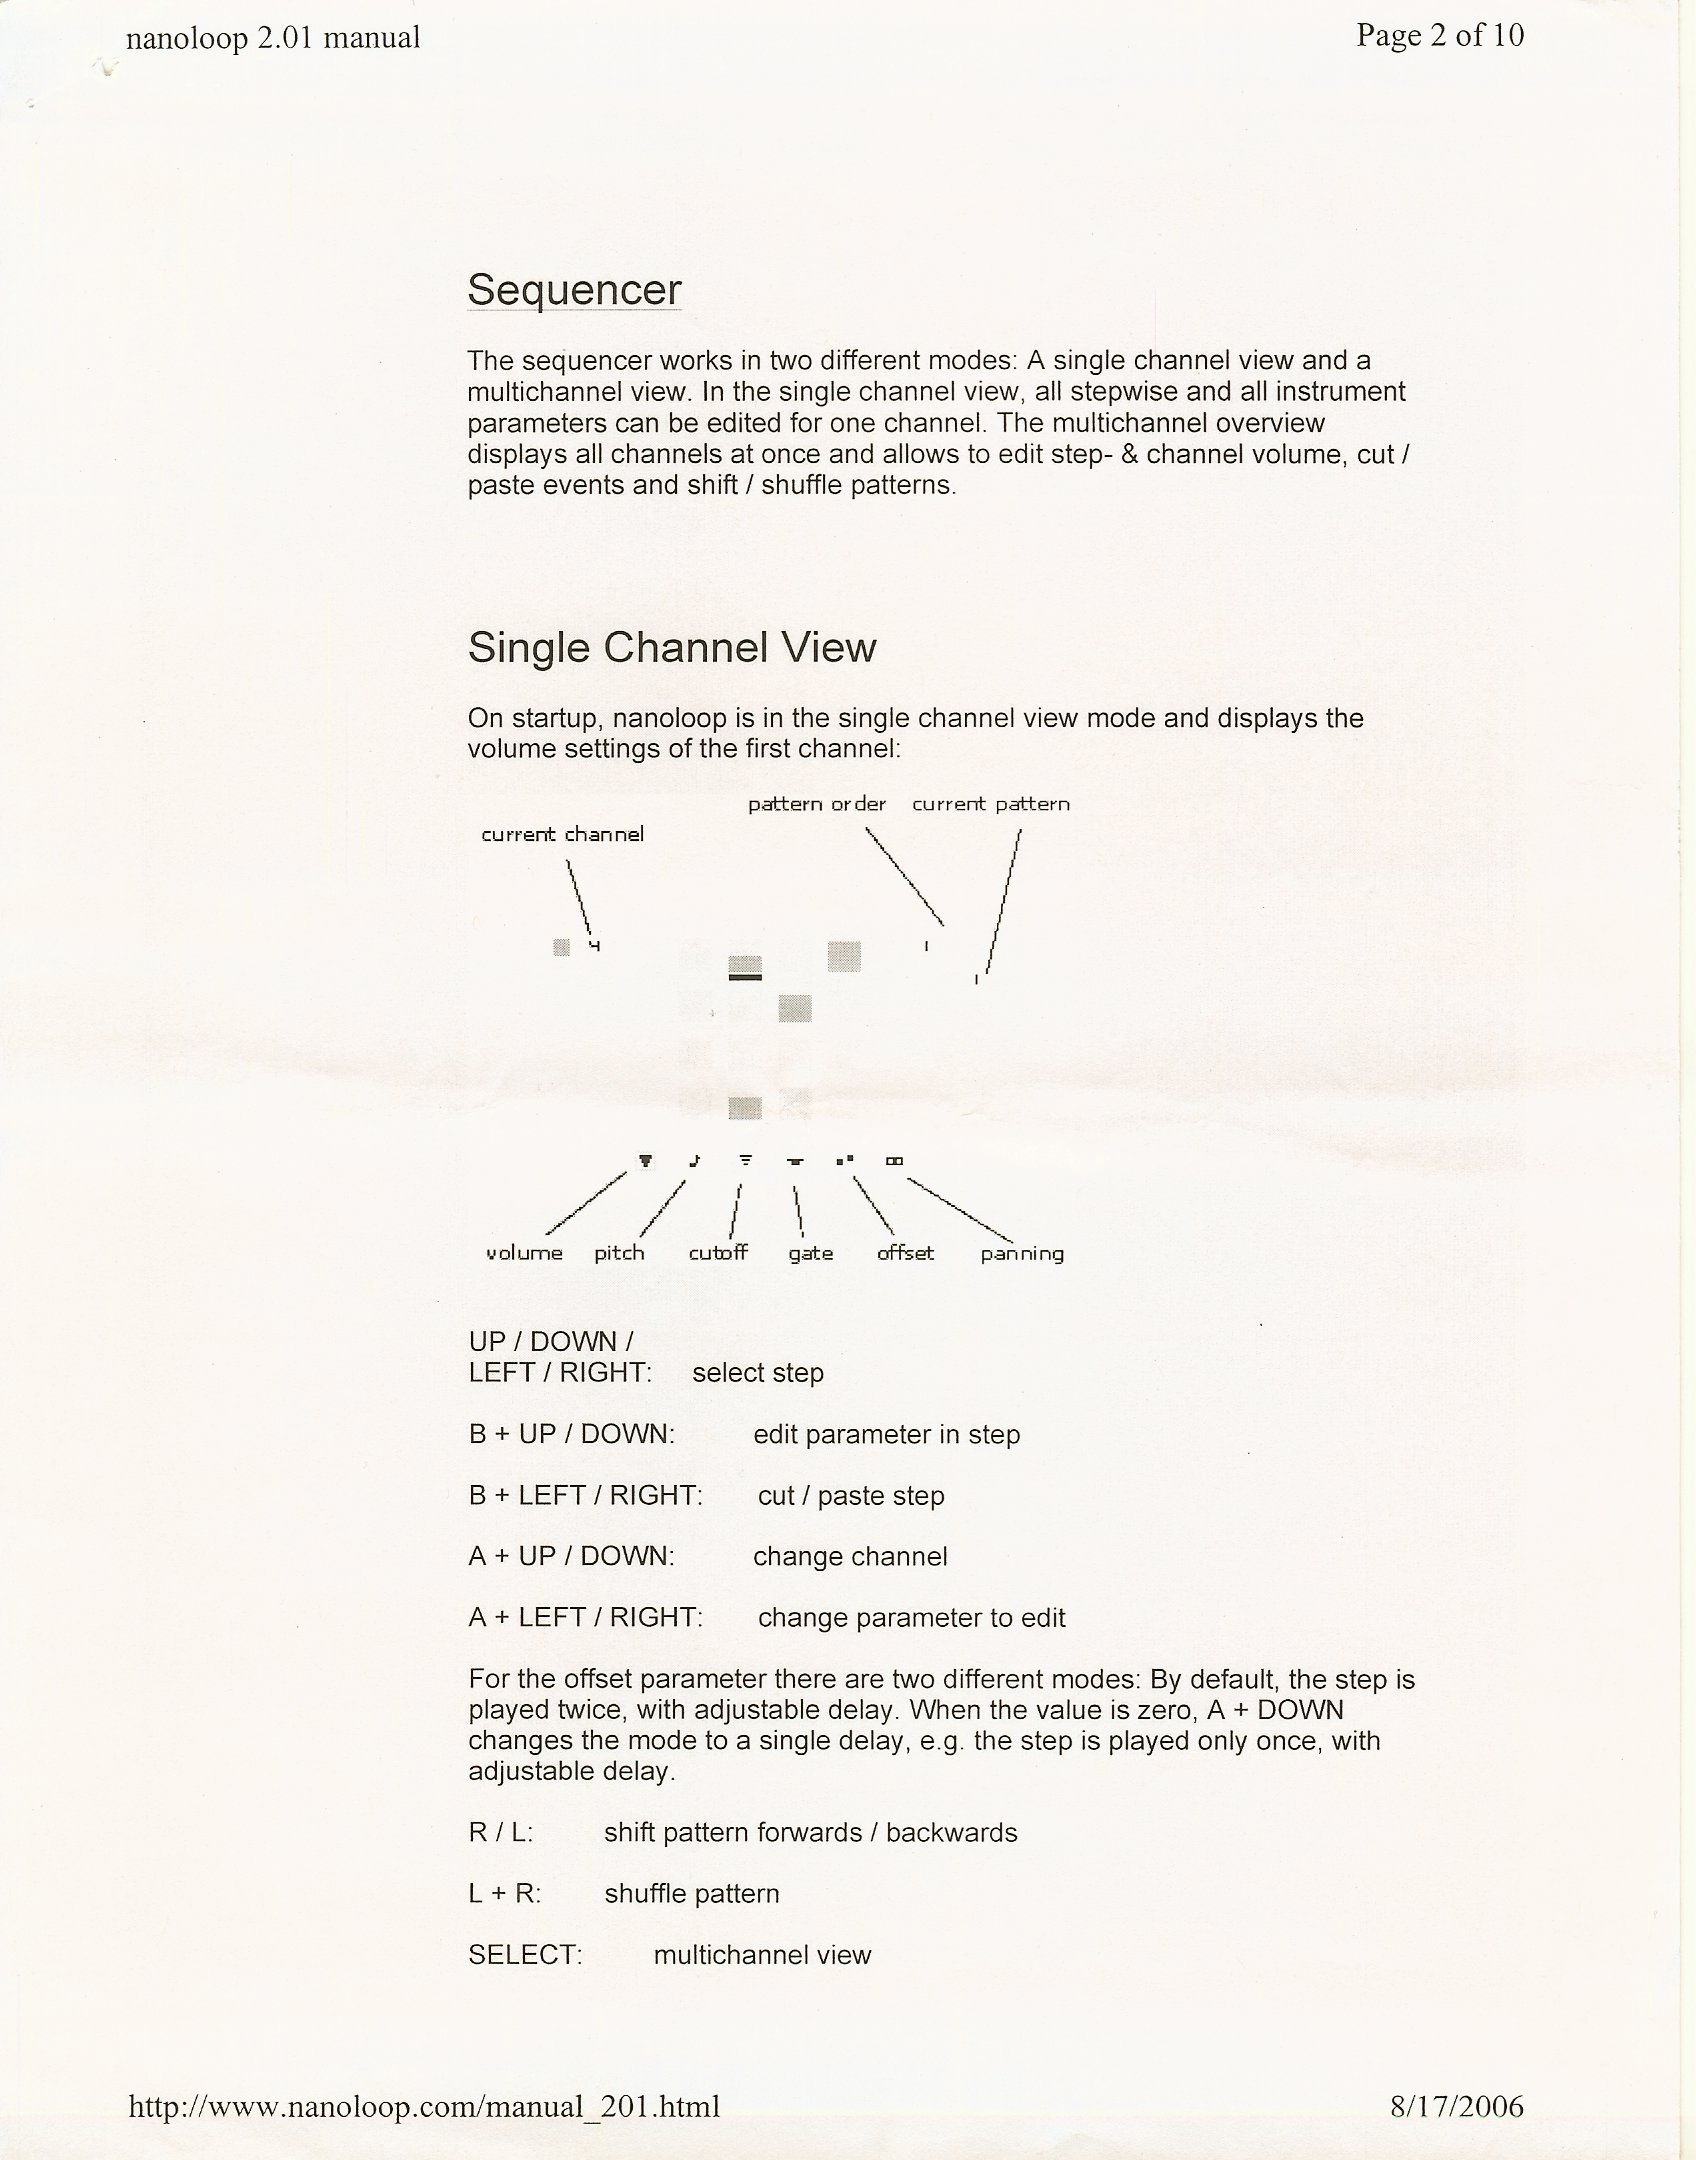 nanoloop_2.01_manual_page2_